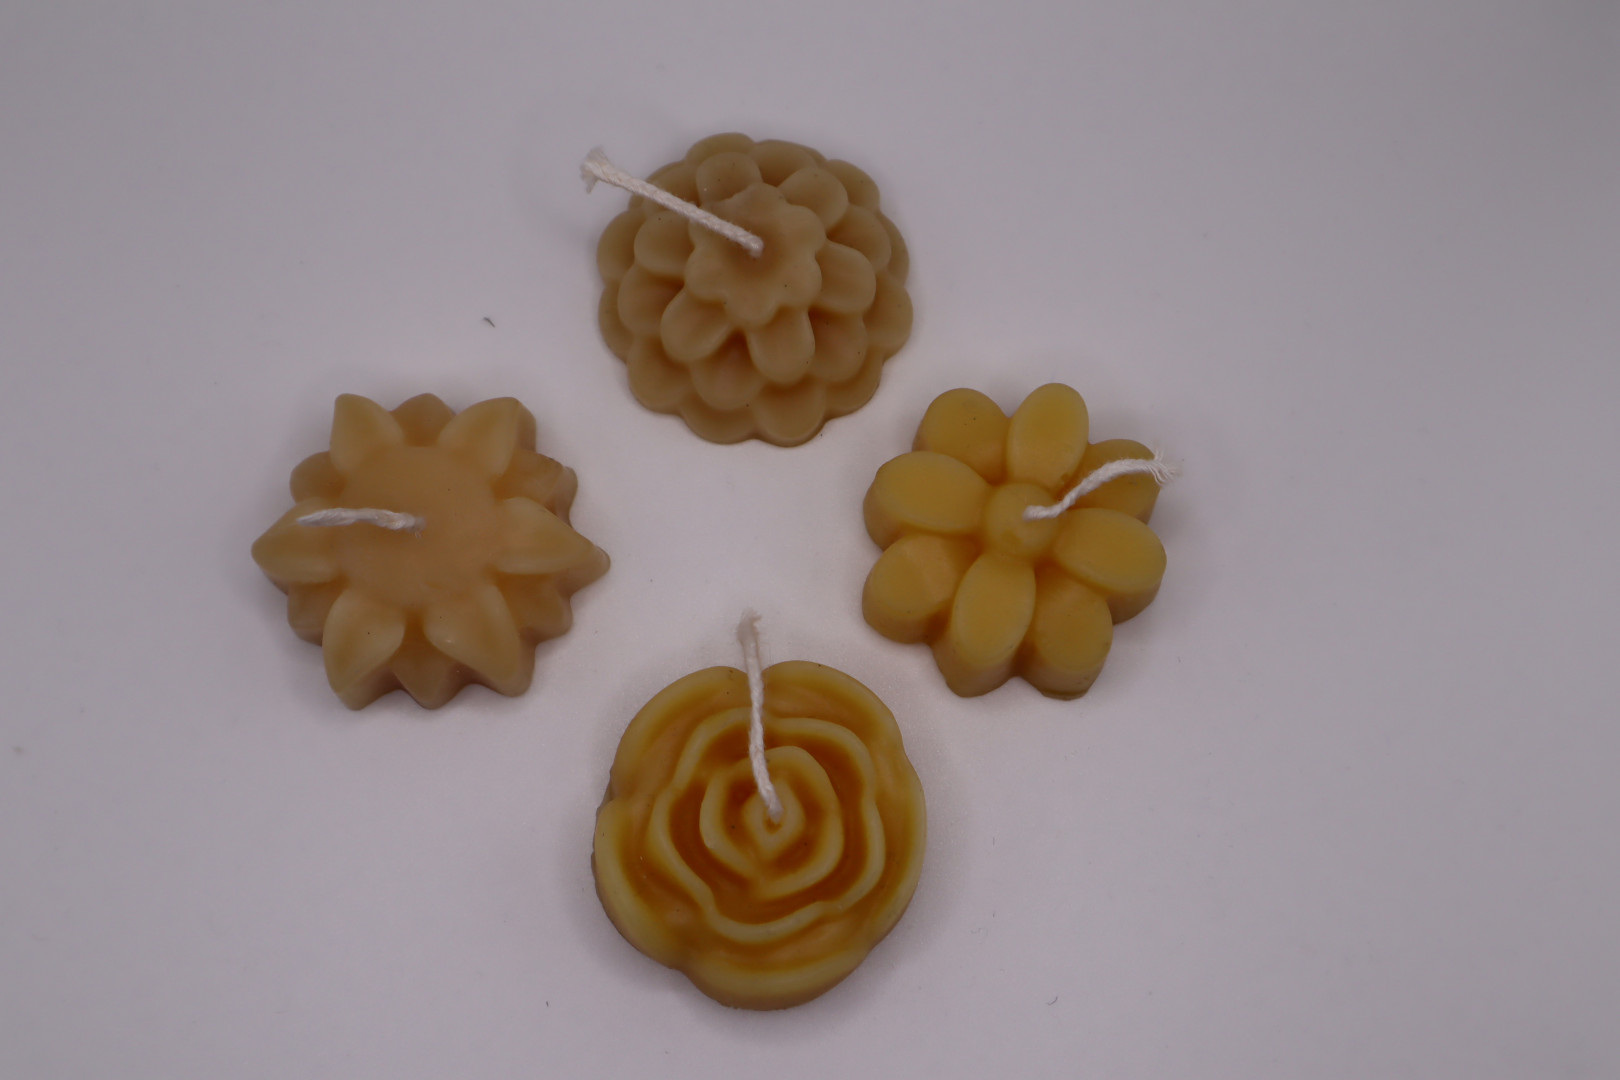 4 Pkg of Floating Flowers Candles 90 g